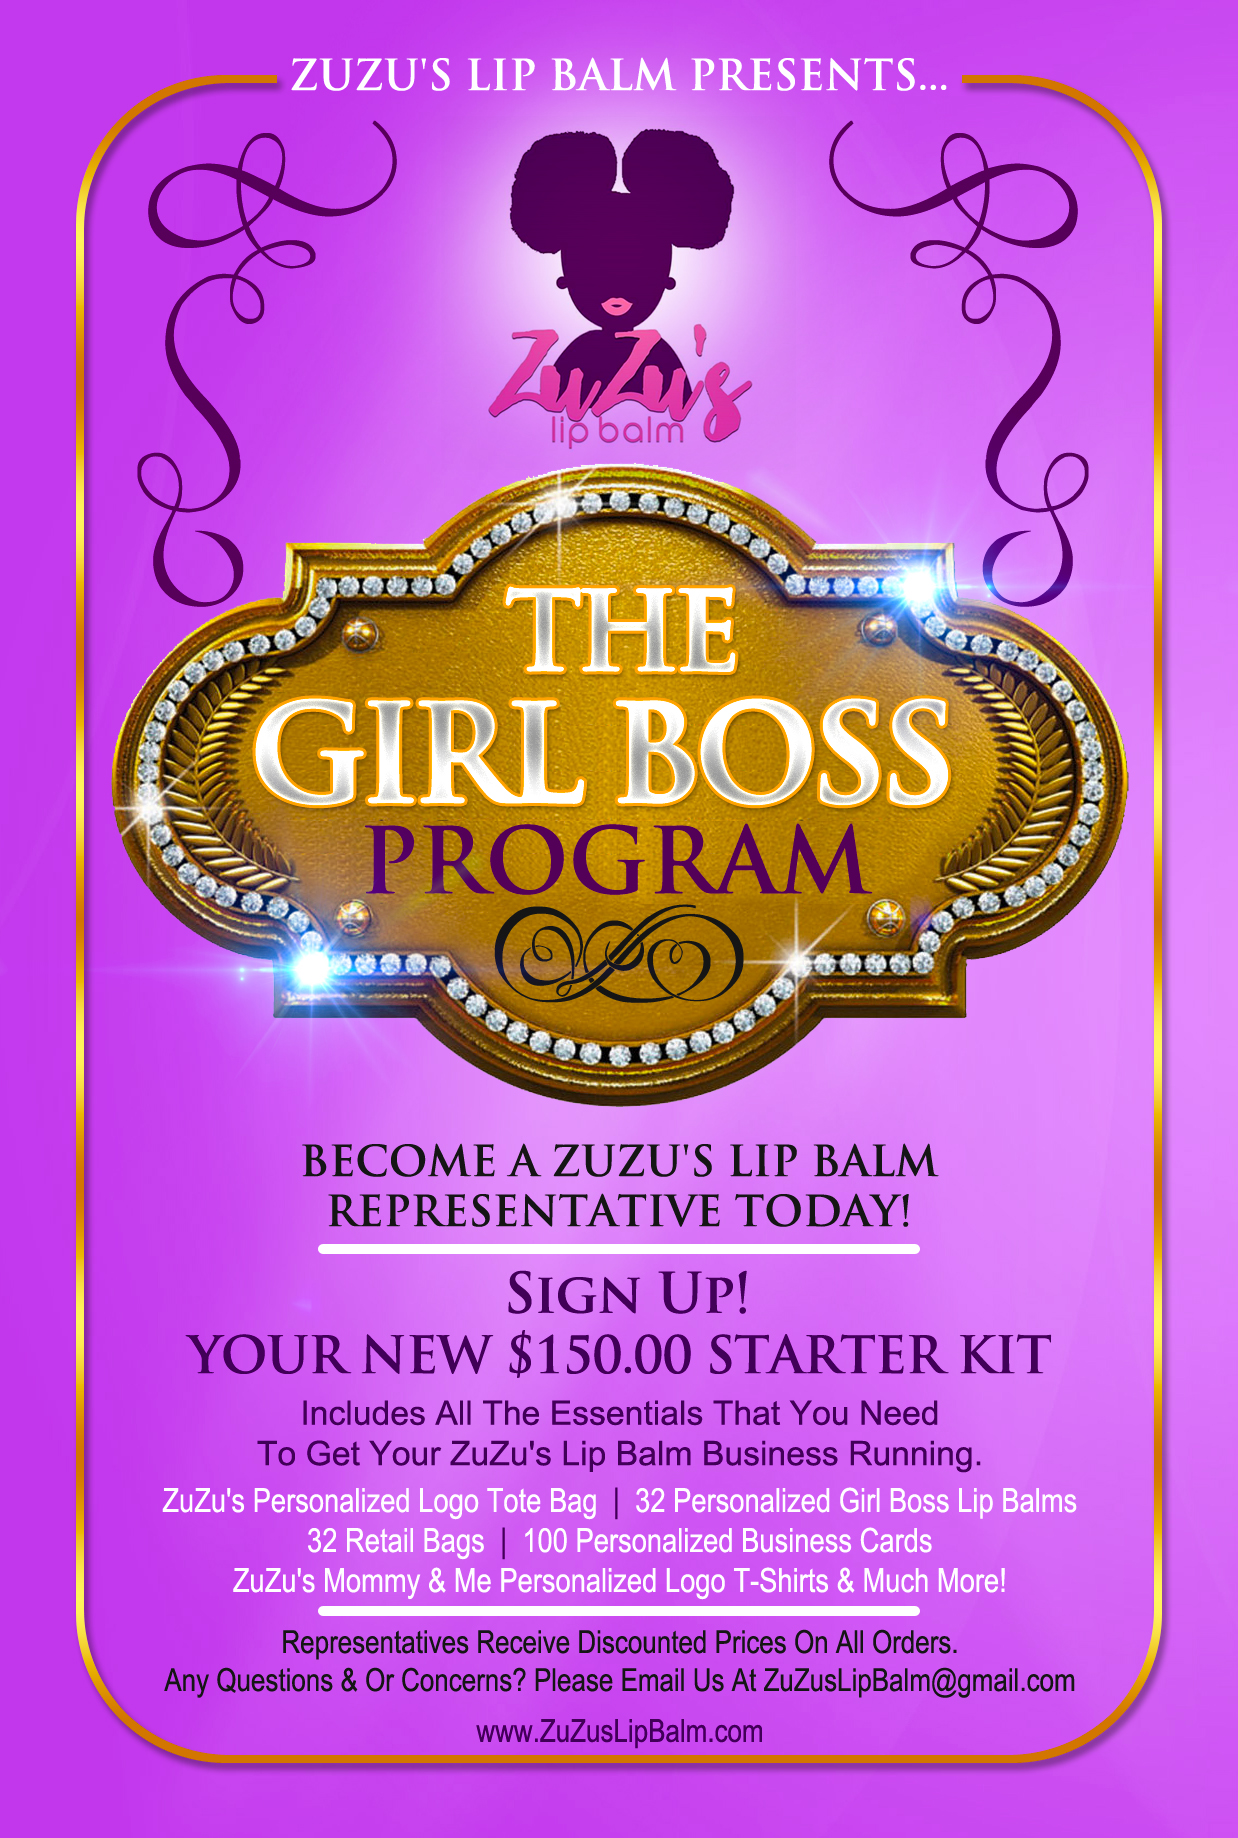 The Girl Boss Program Flyer.jpg